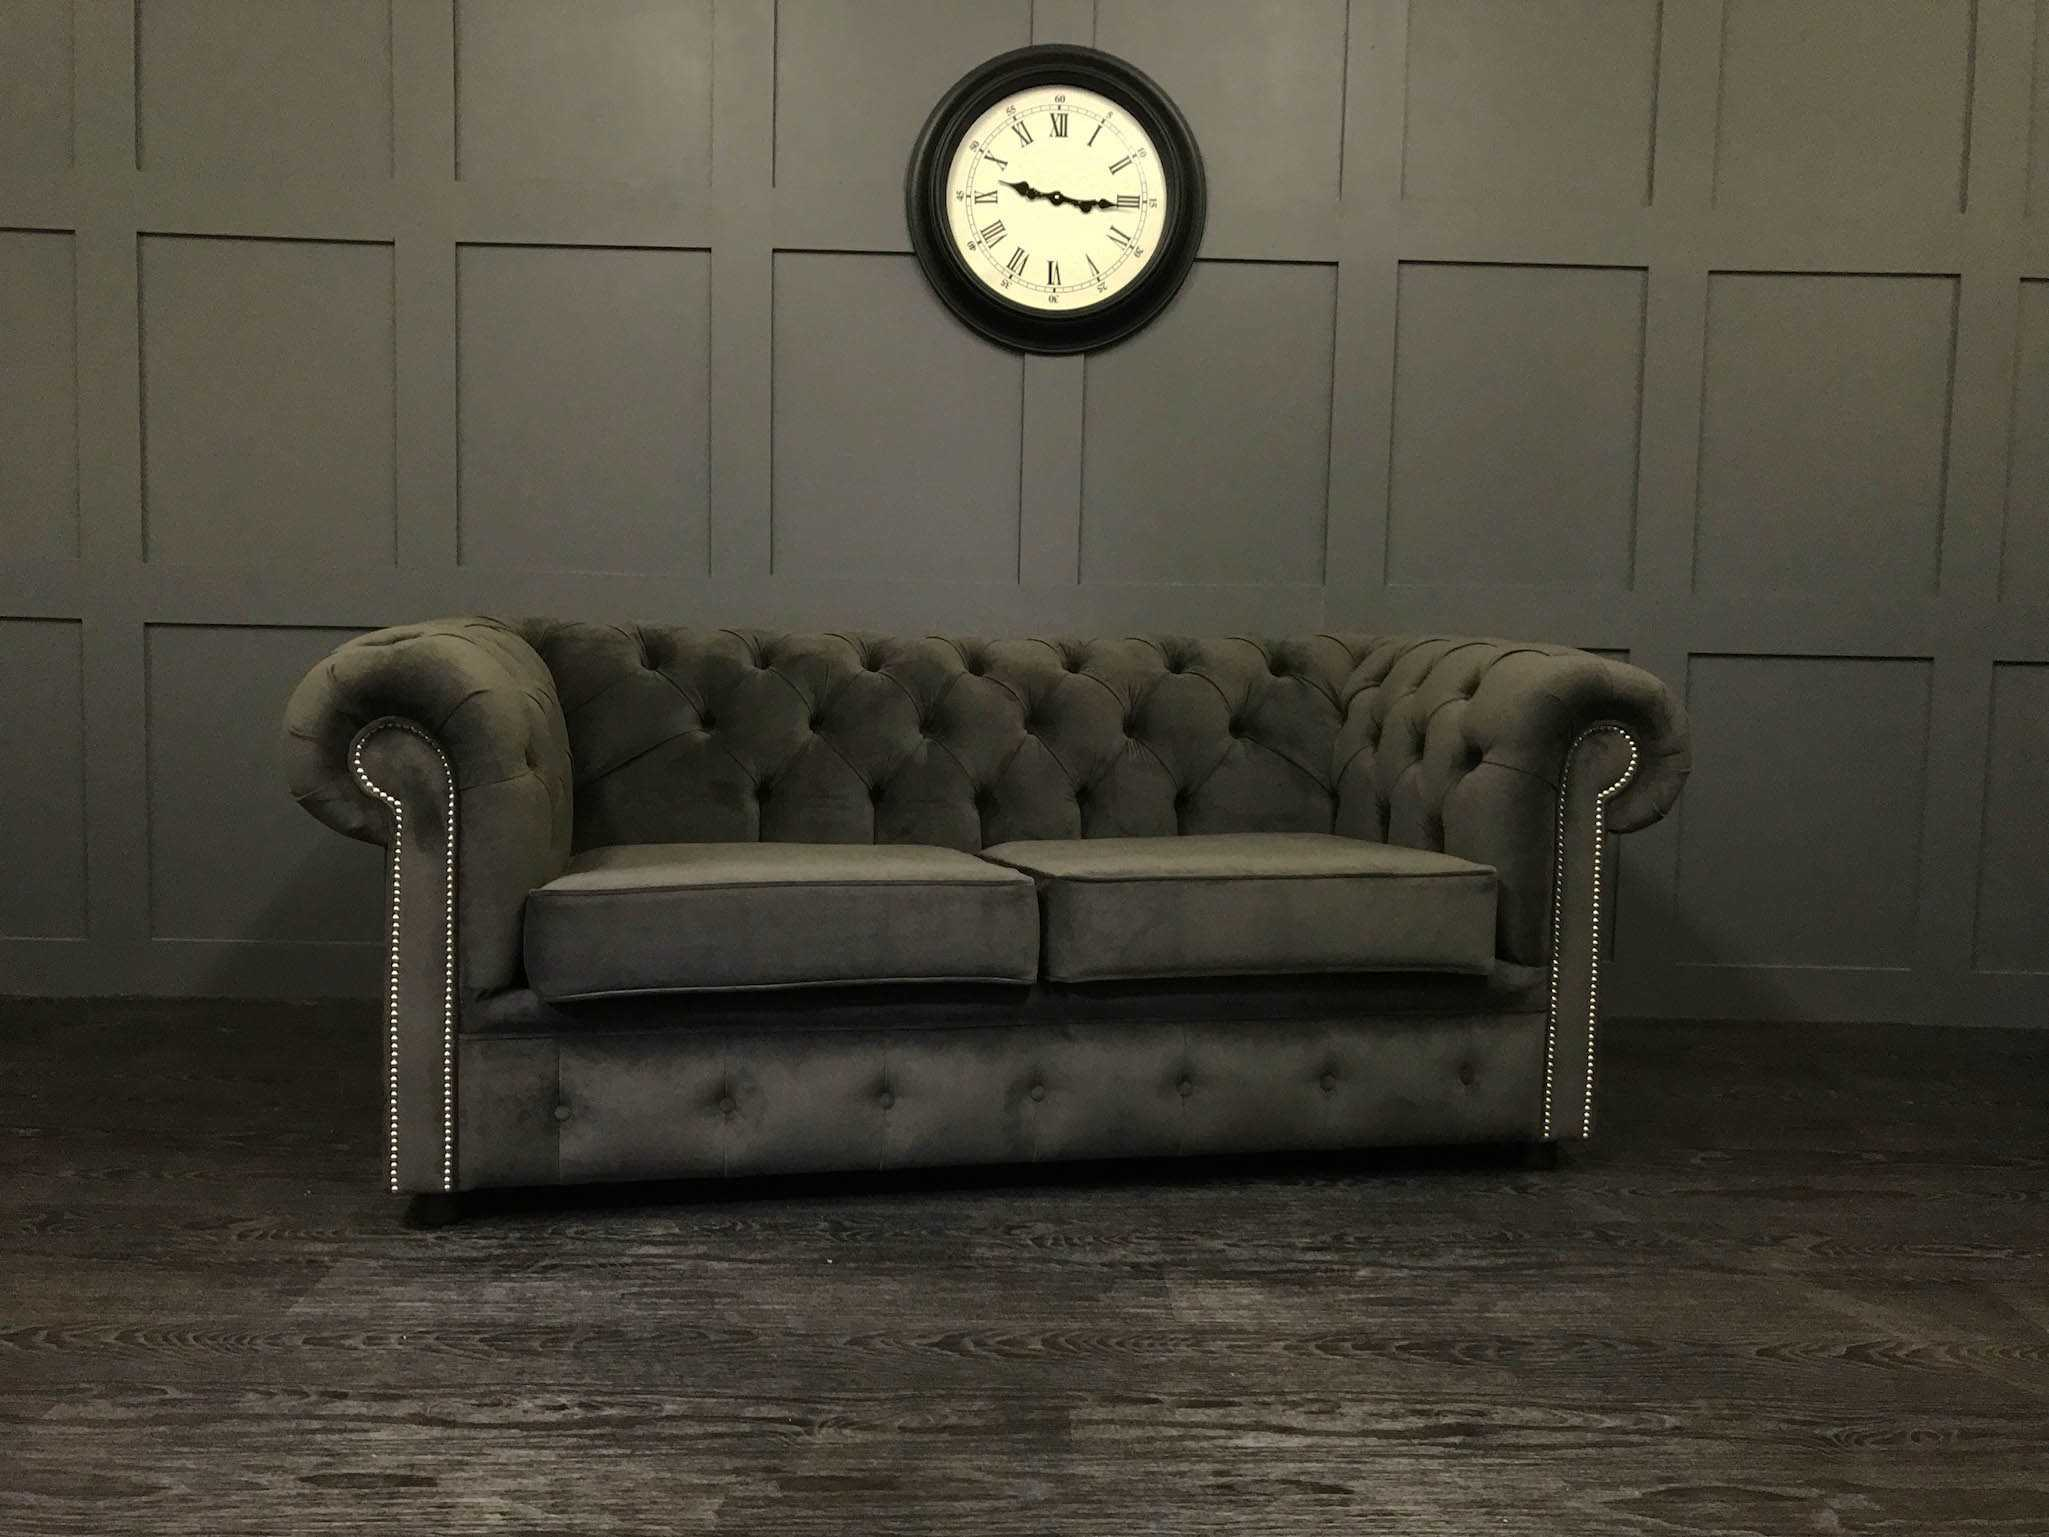 Made To Measure Sofas Manchester Timeless Chesterfield Sofas Handmade Leather Fabric